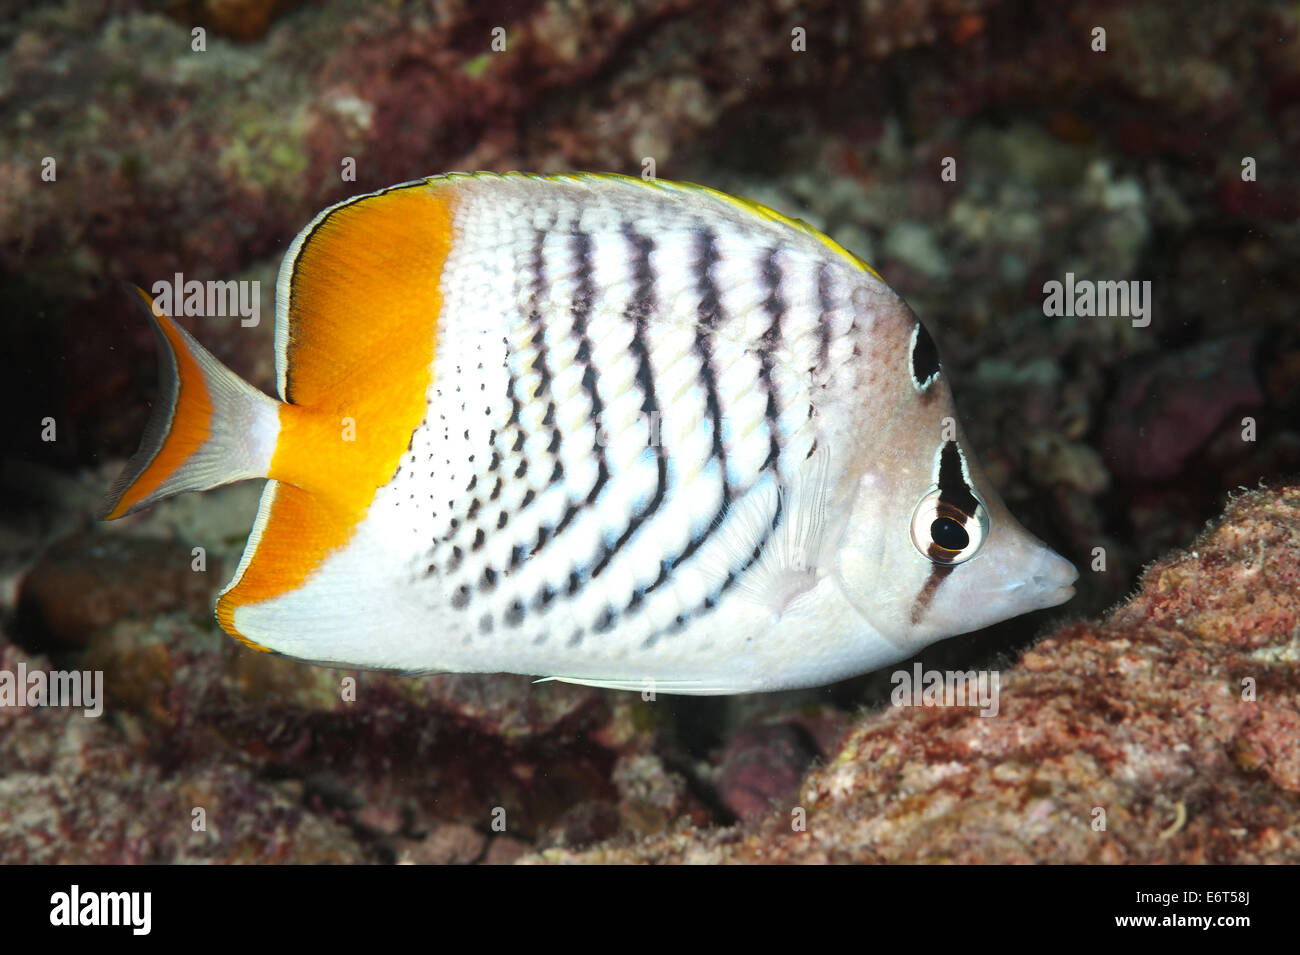 Yellowback butterflyfish in Maldives, Indian Ocean Stock Photo